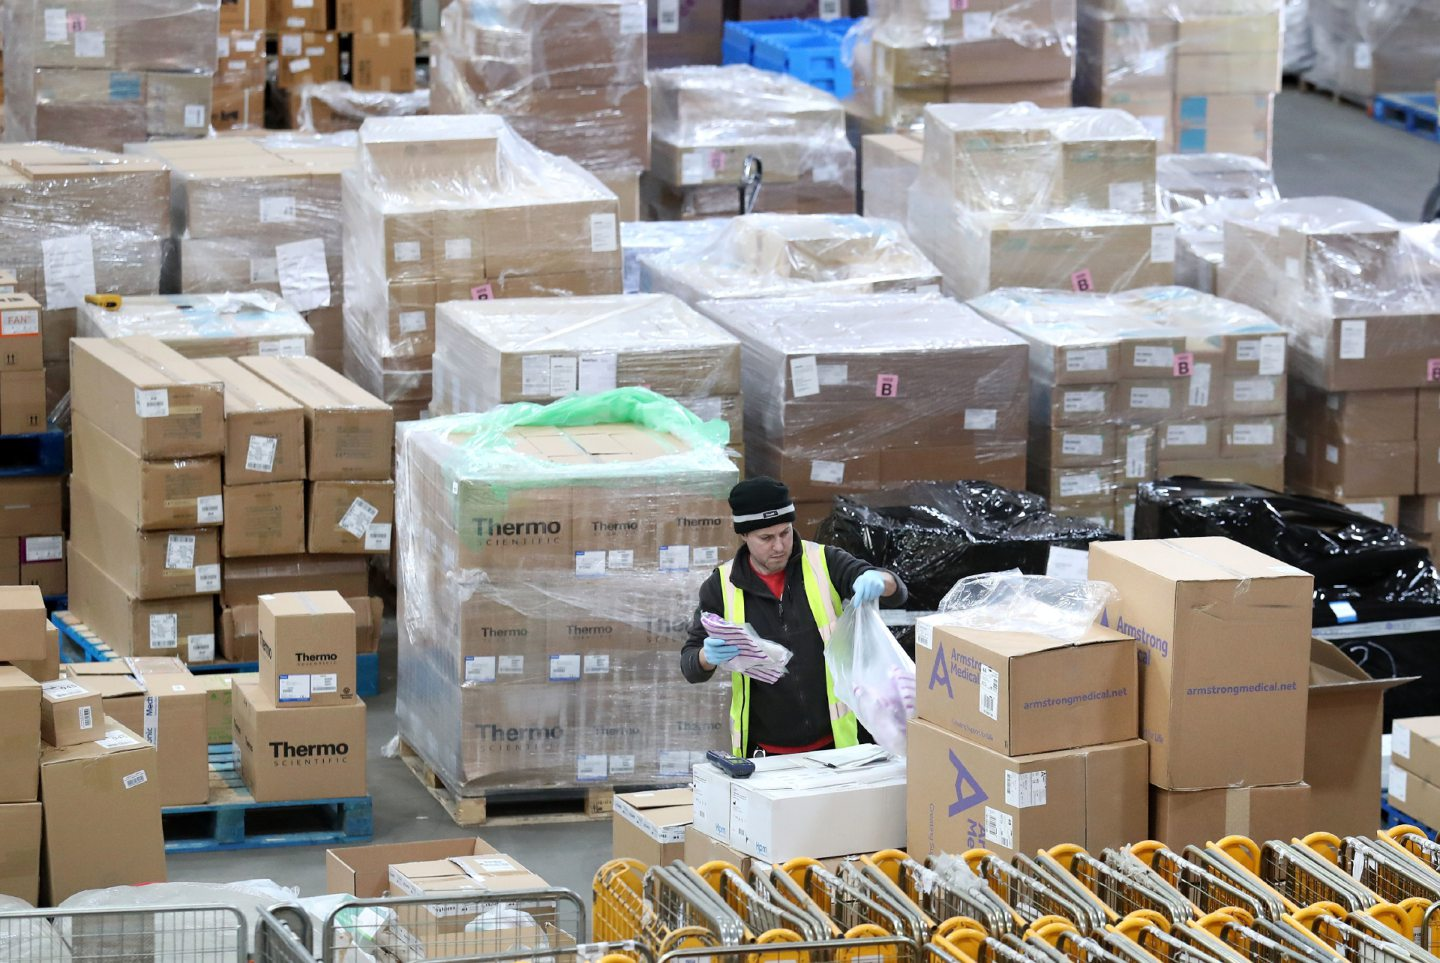 A worker gathers supplies at the NHS national procurement warehouse at Canderside, Larkhall.